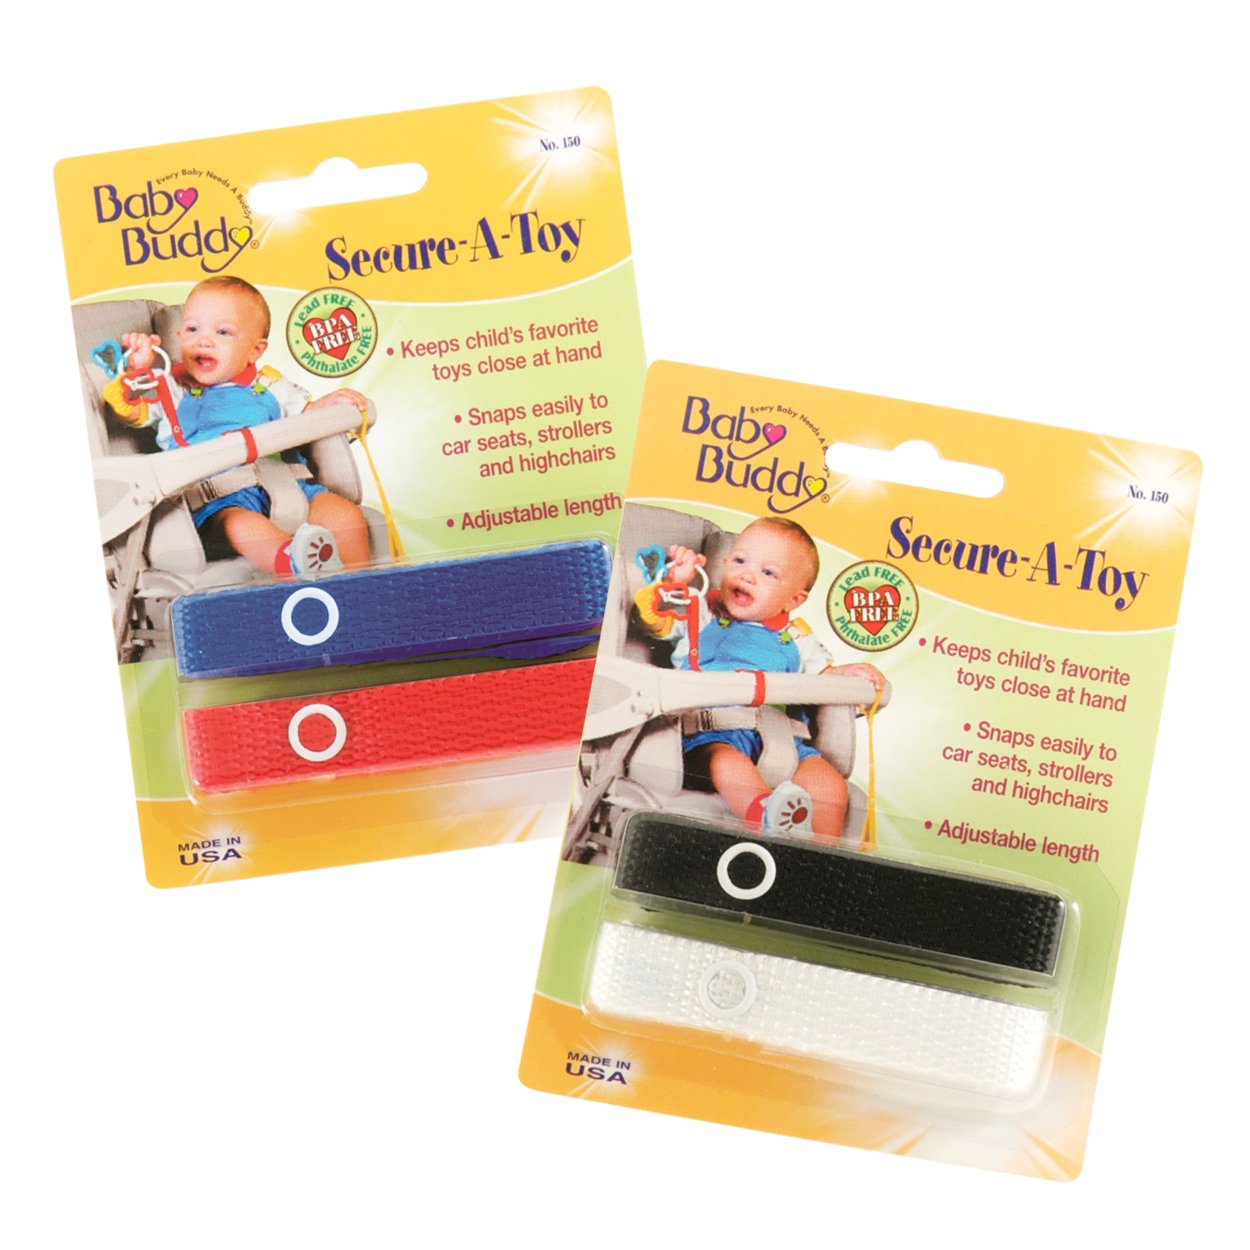 Baby Buddy Secure-A-Toy straps 4ct for 6-36 months (Multicoloured) Compac Industries 04152-RyRWBk